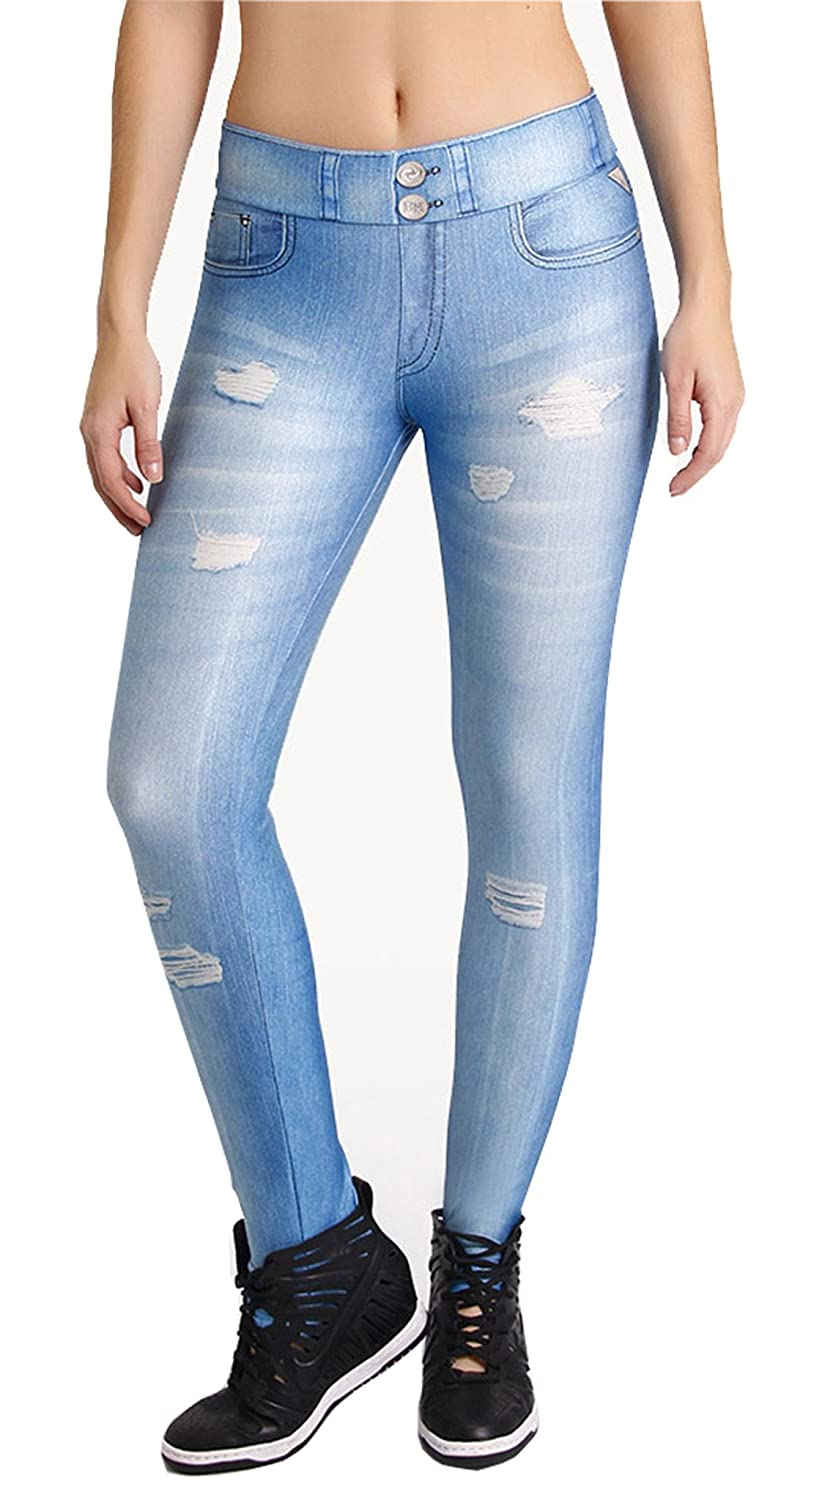 Brazilian Fake Jeans - Fabulous Light Blue